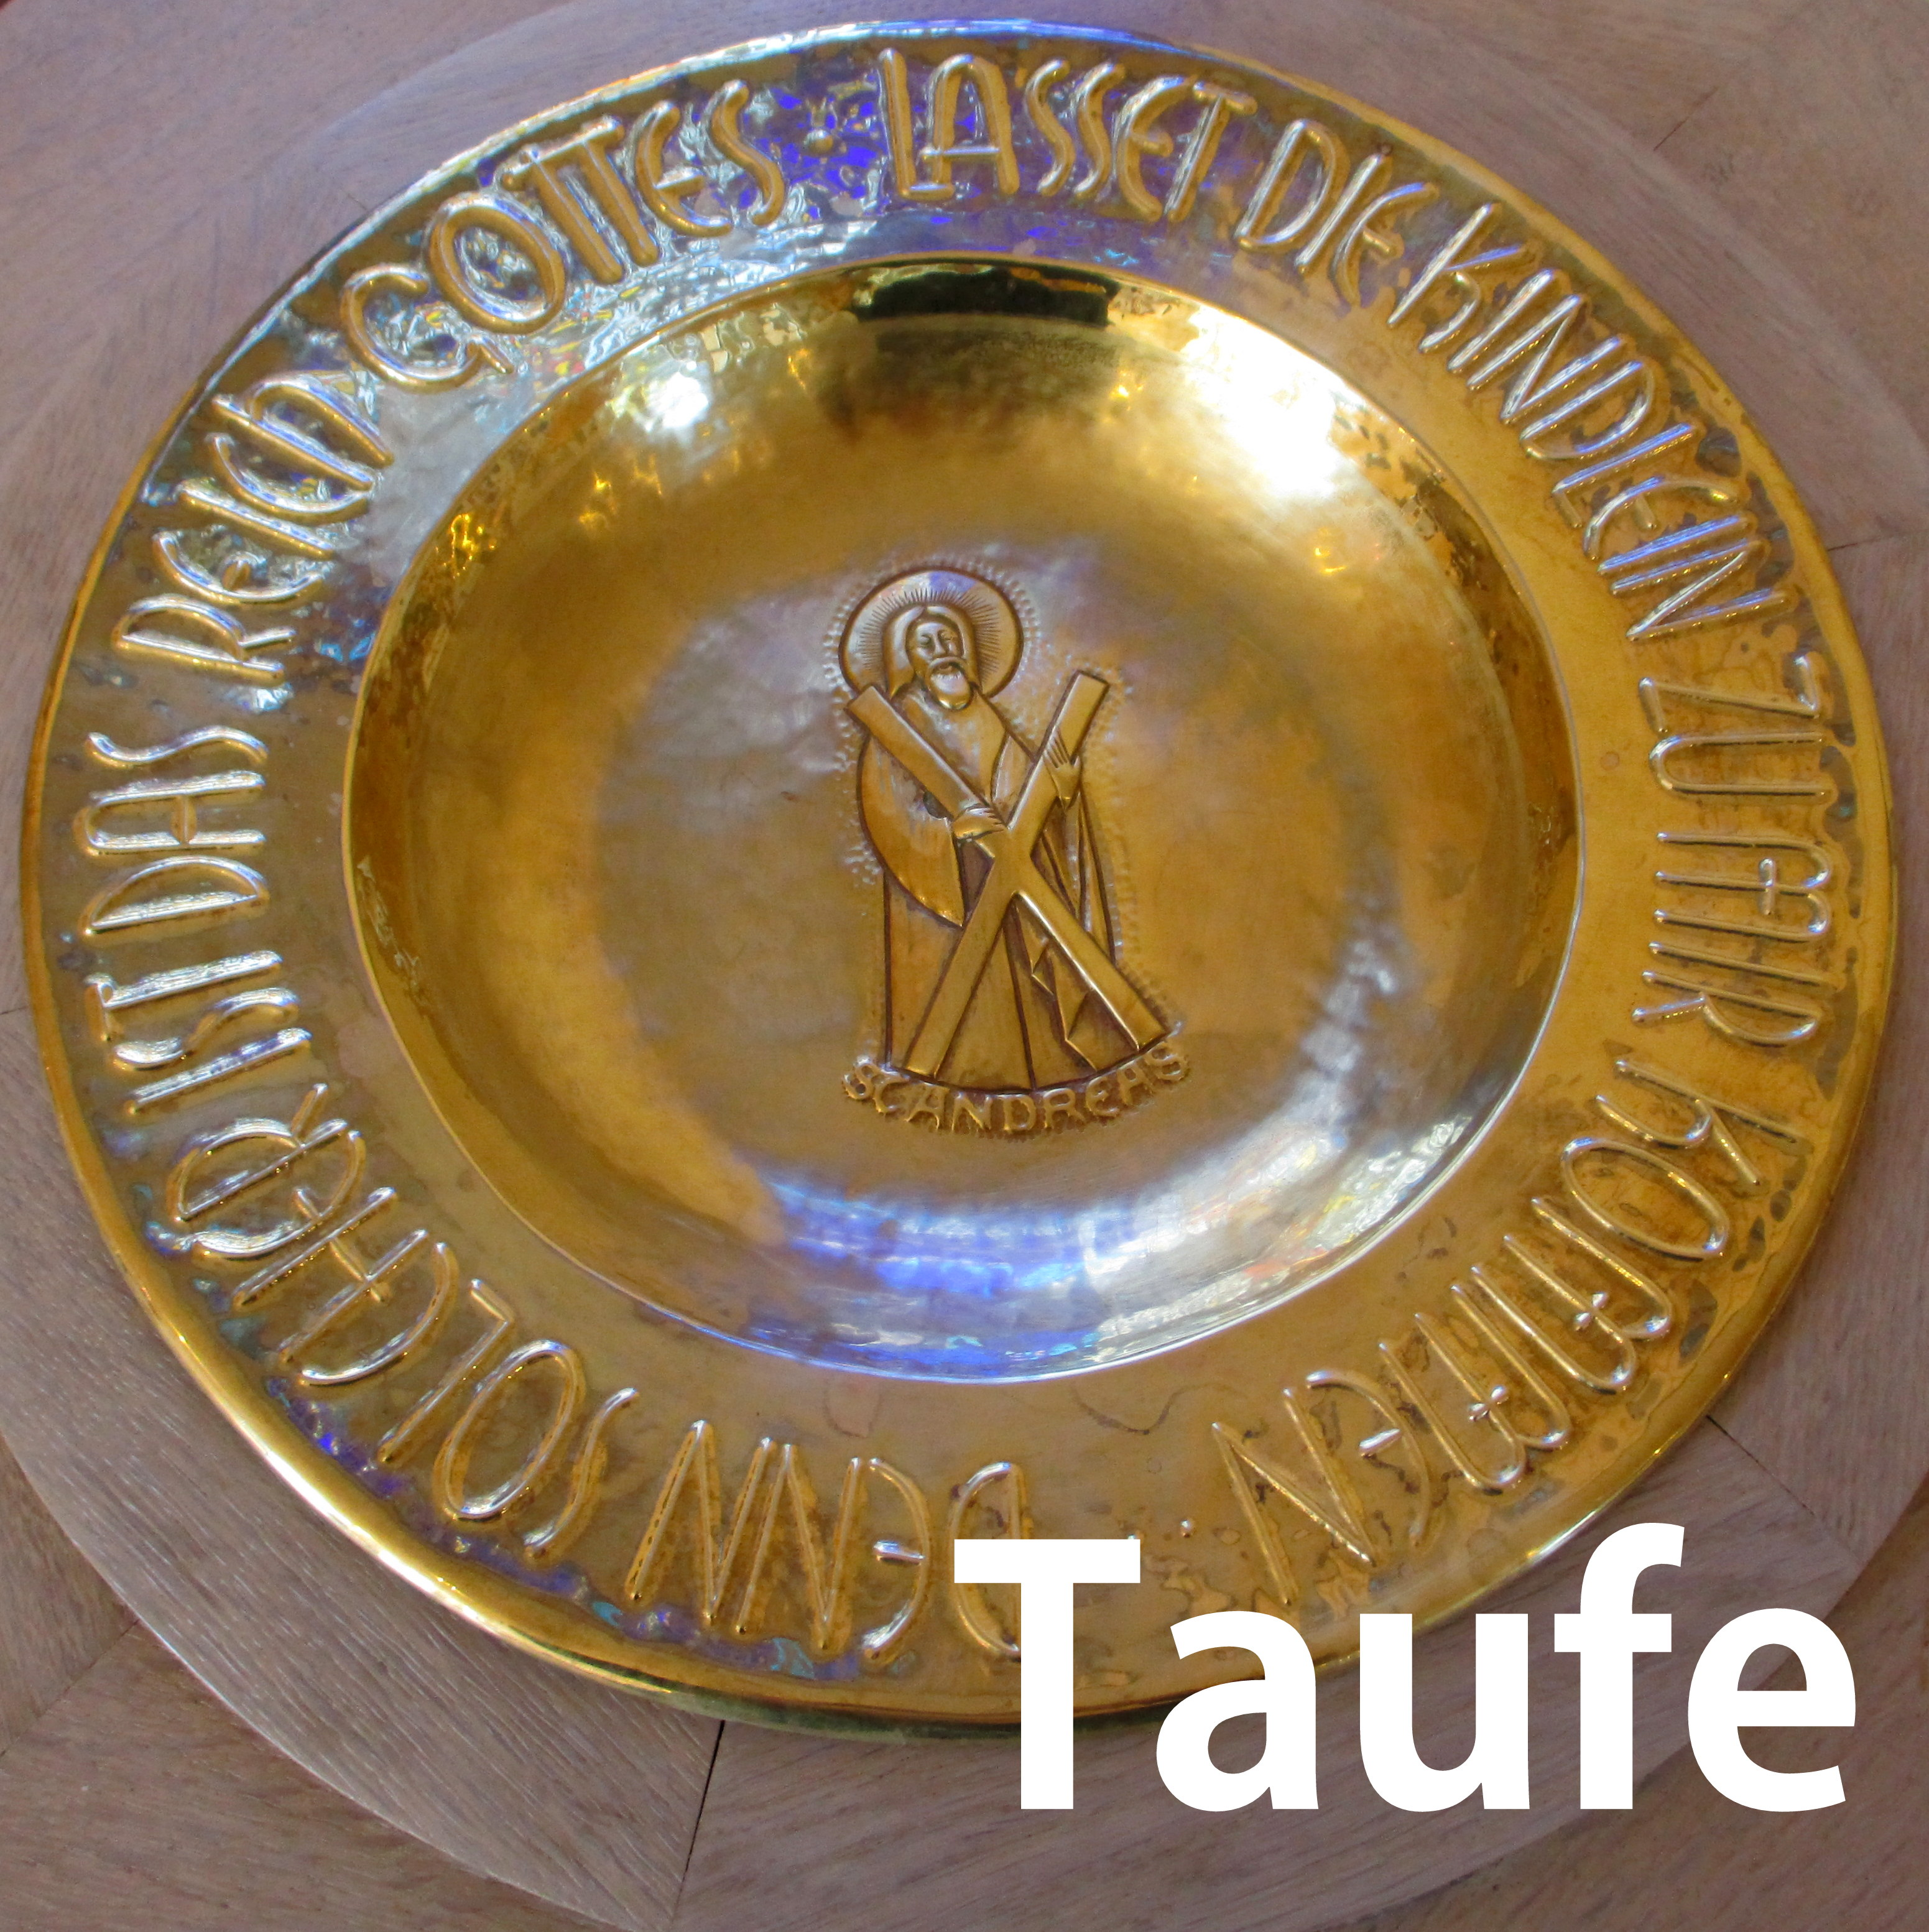 Taufe - Taufbecken in St. Andreas